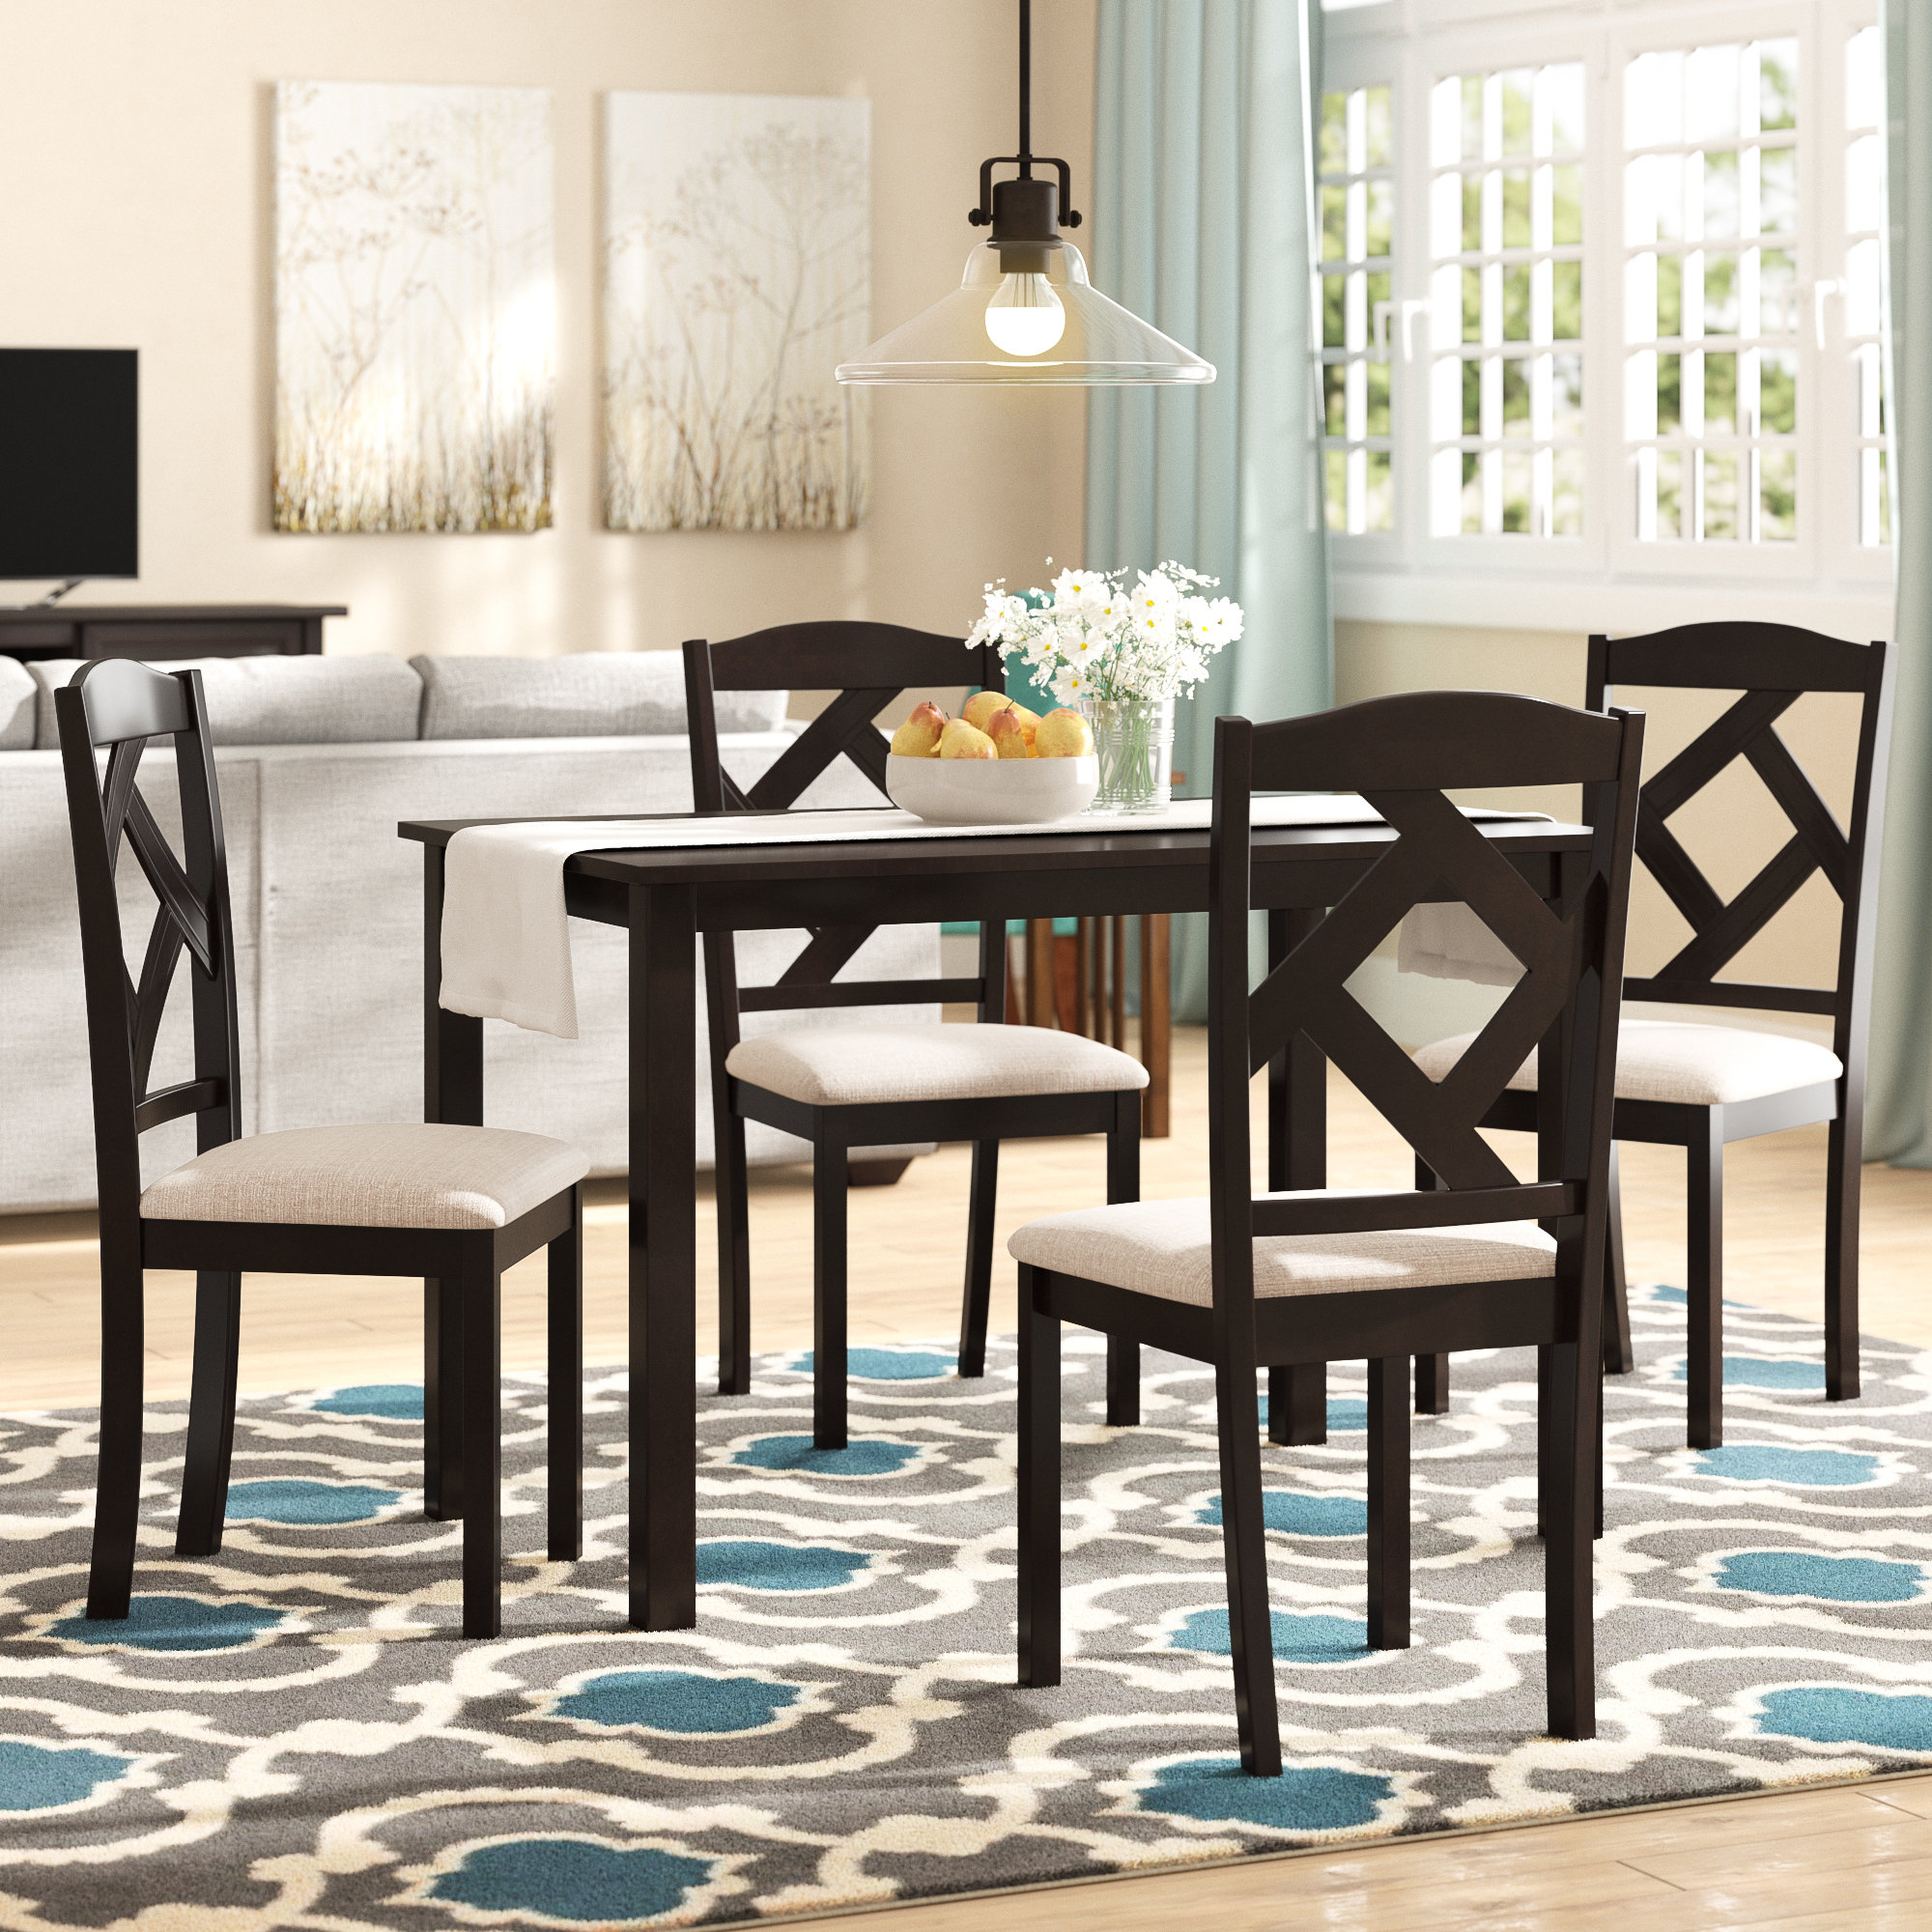 2019 5 Piece Breakfast Nook Dining Sets Pertaining To Red Barrel Studio Goosman Modern And Contemporary 5 Piece Breakfast (View 1 of 25)